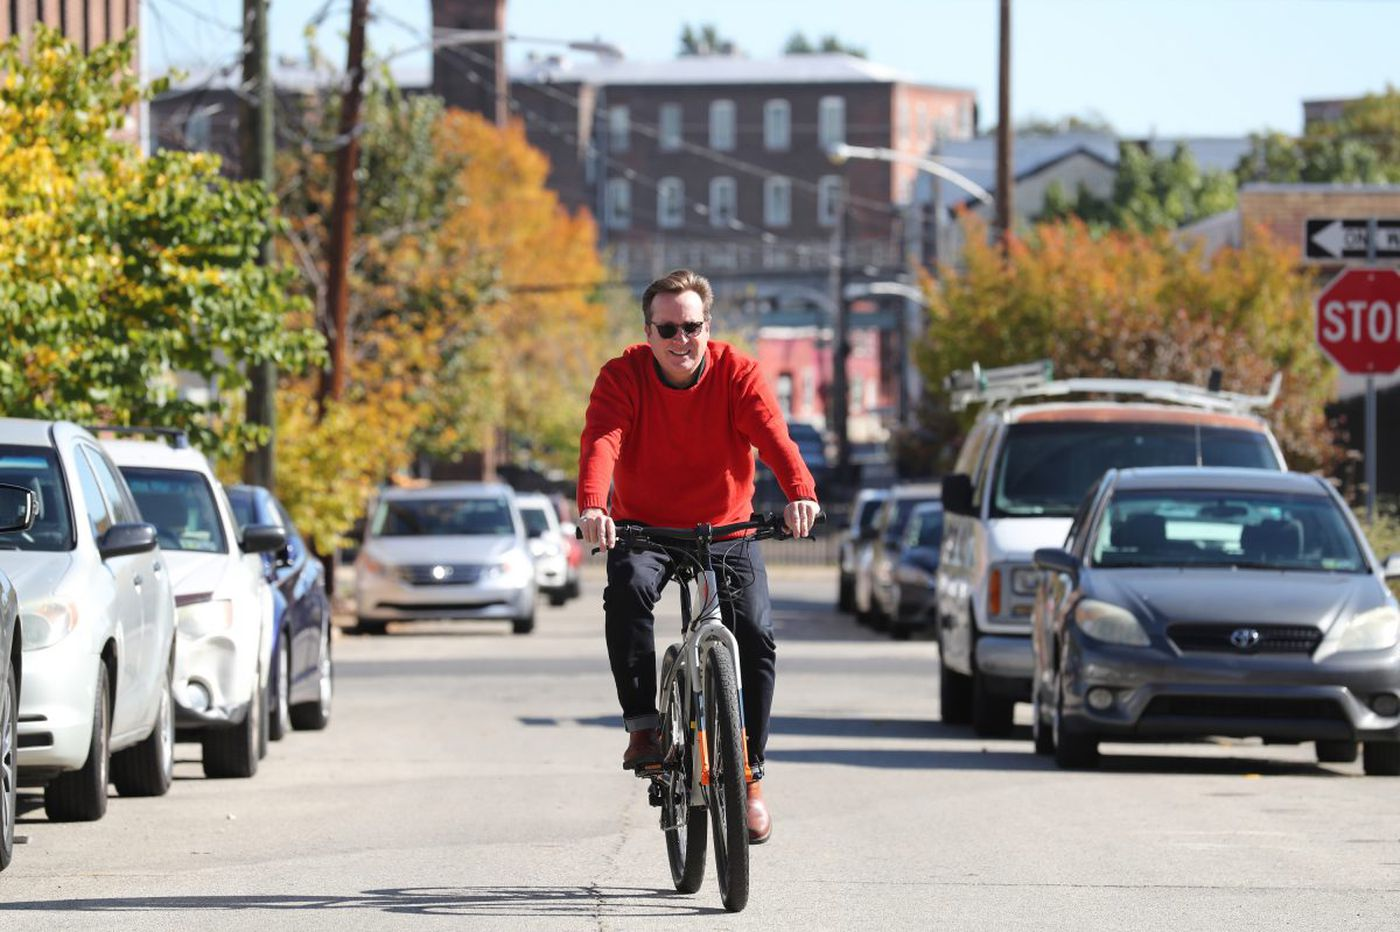 At 55, he's not too old to ride bikes - or to start a company that makes them